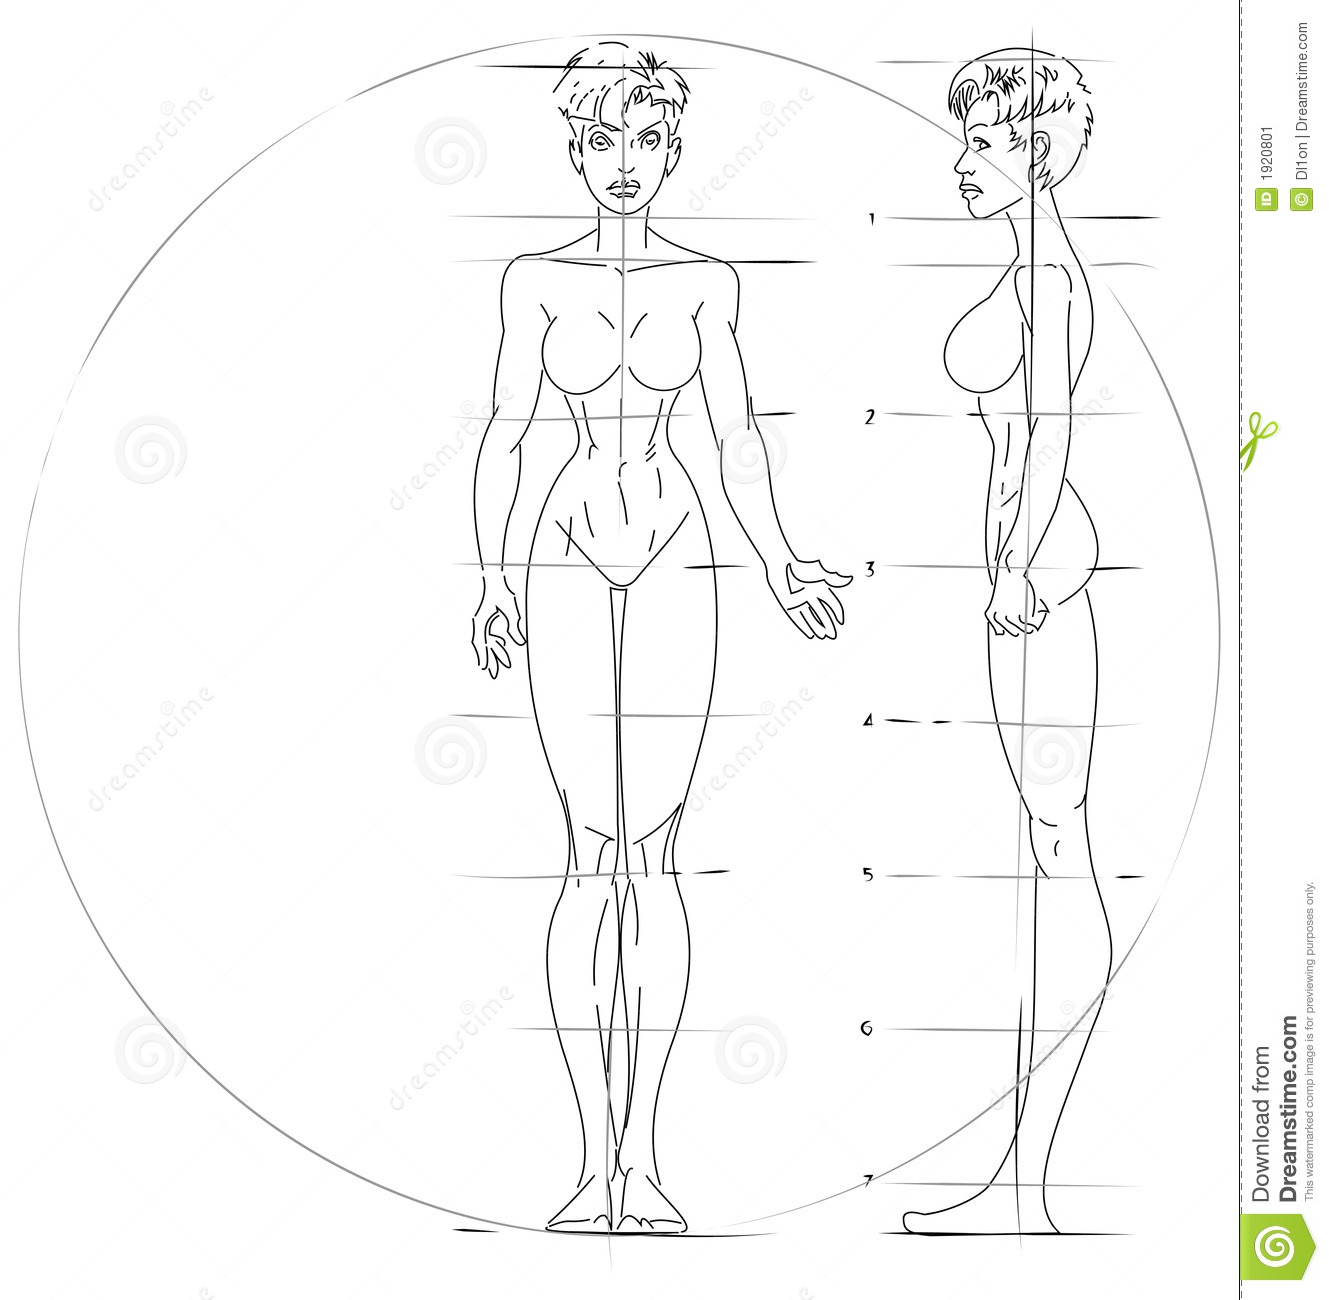 Anatomy Girl Figure Drawing Stock Vector - Illustration of sport ...